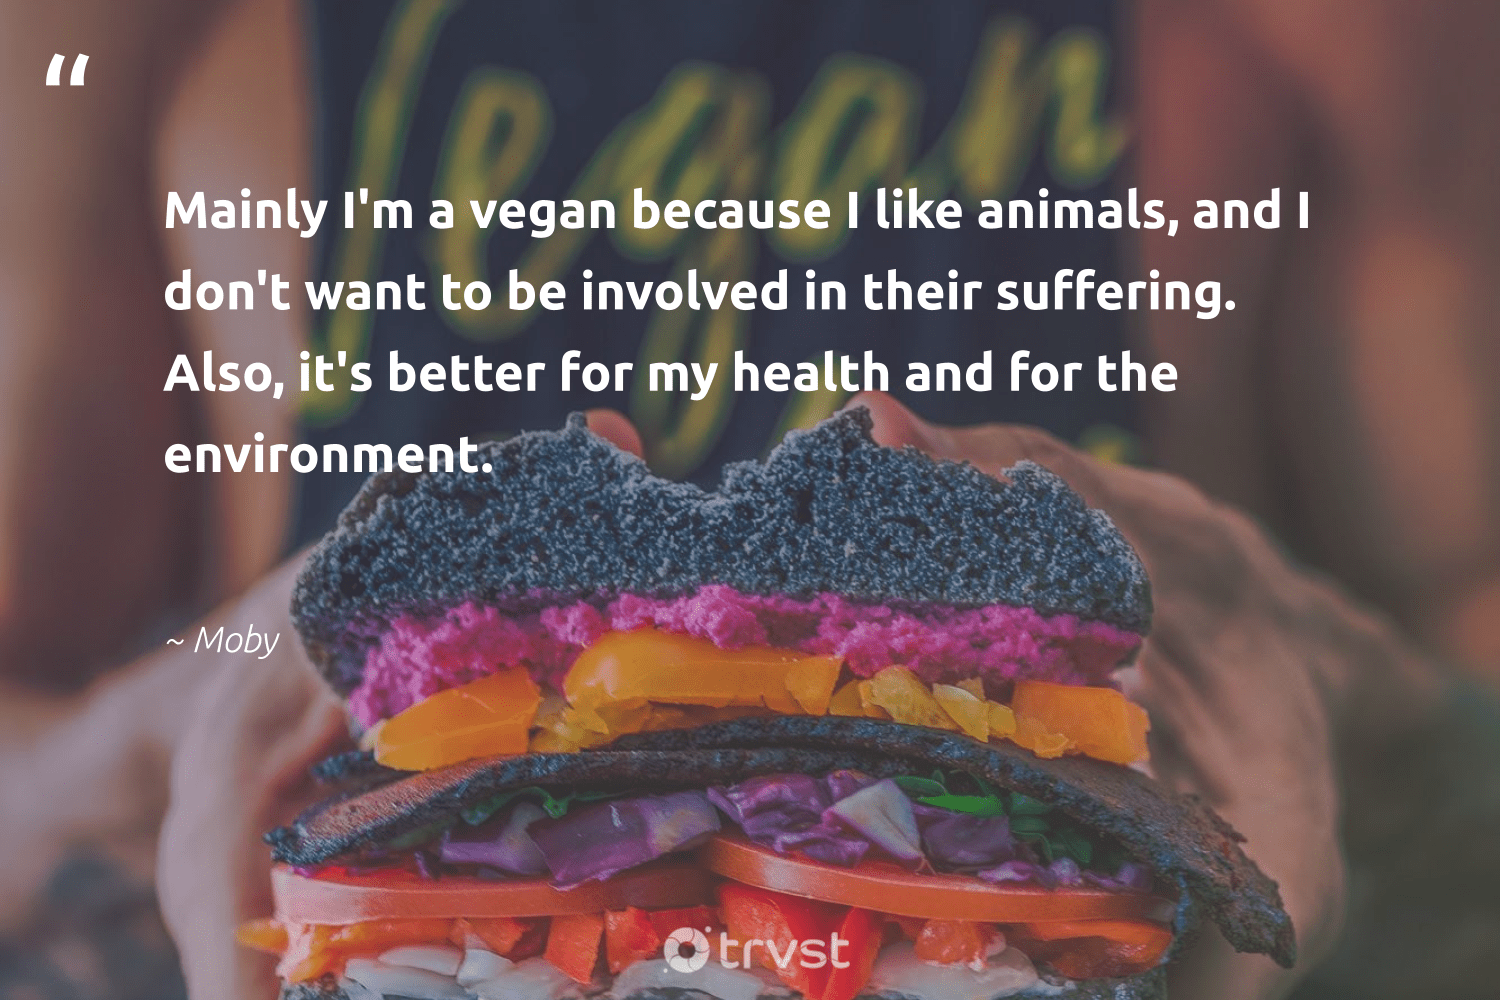 """Mainly I'm a vegan because I like animals, and I don't want to be involved in their suffering. Also, it's better for my health and for the environment.""  - Moby #trvst #quotes #environment #animals #health #vegan #mothernature #sustainability #gogreen #changetheworld #conservation #greenliving"